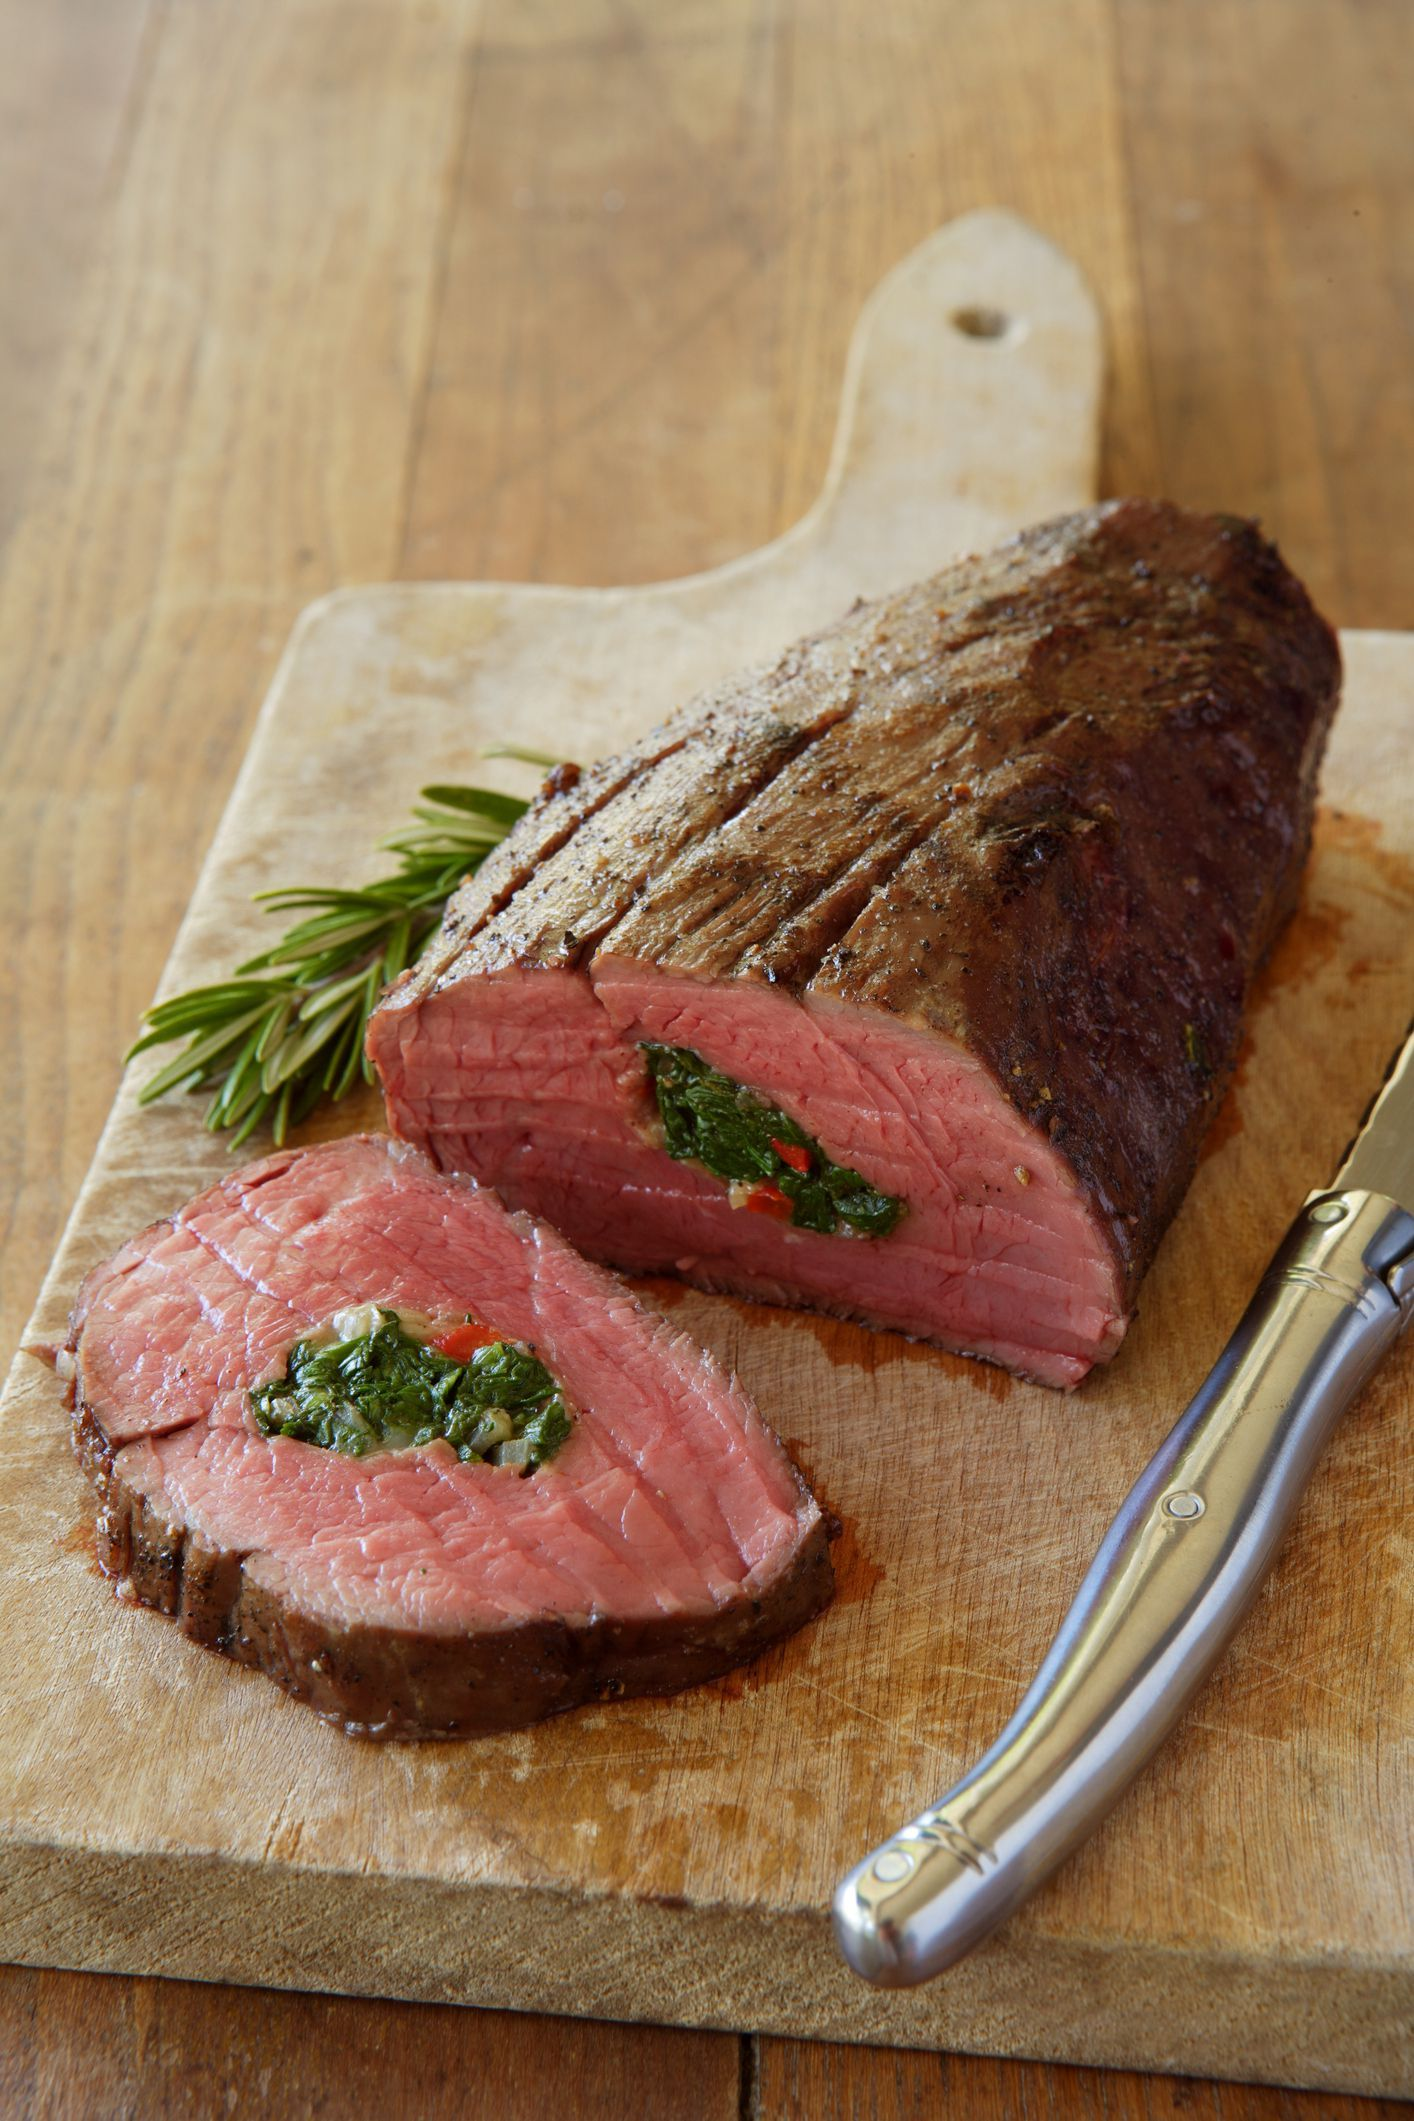 Beef Tenderloin Stuffed With Peppers Spinach Goat Cheese In Wine Recipe Beef Tenderloin Beef Tenderloin Recipes Stuffed Peppers